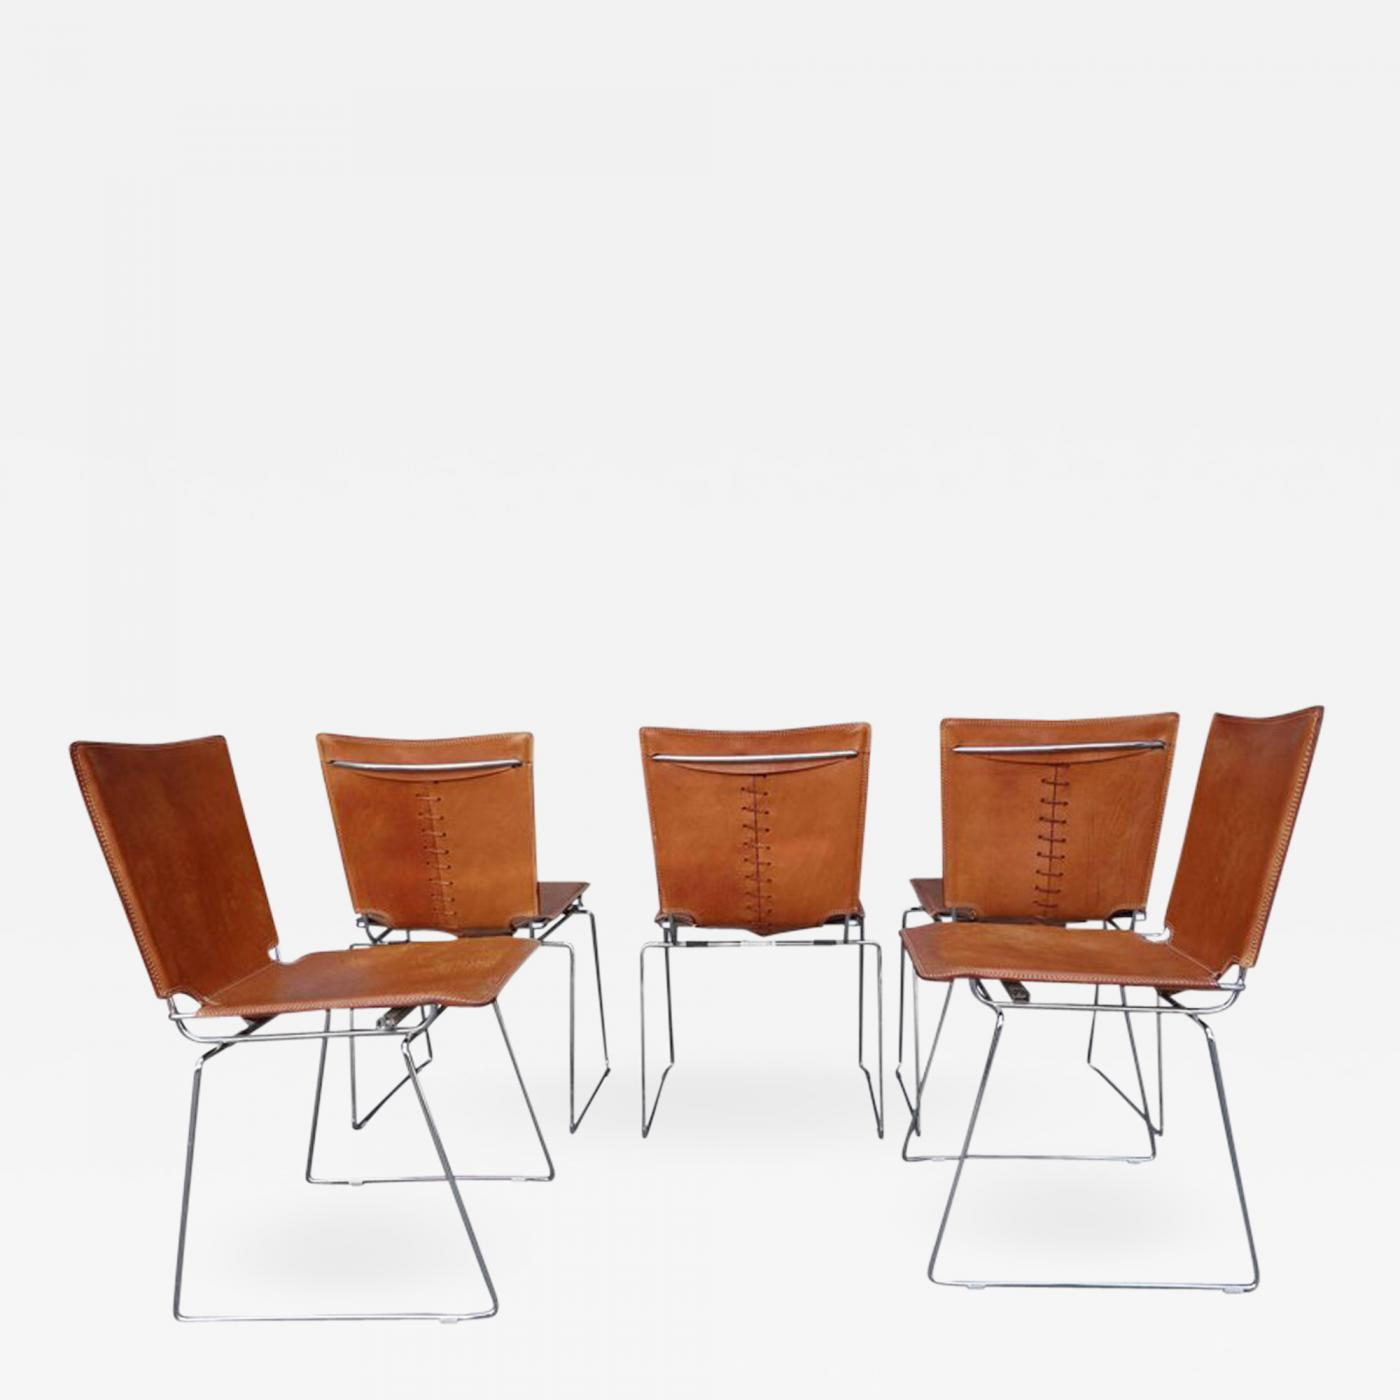 20 Midcentury Pelle Stacking Chairs By Icf